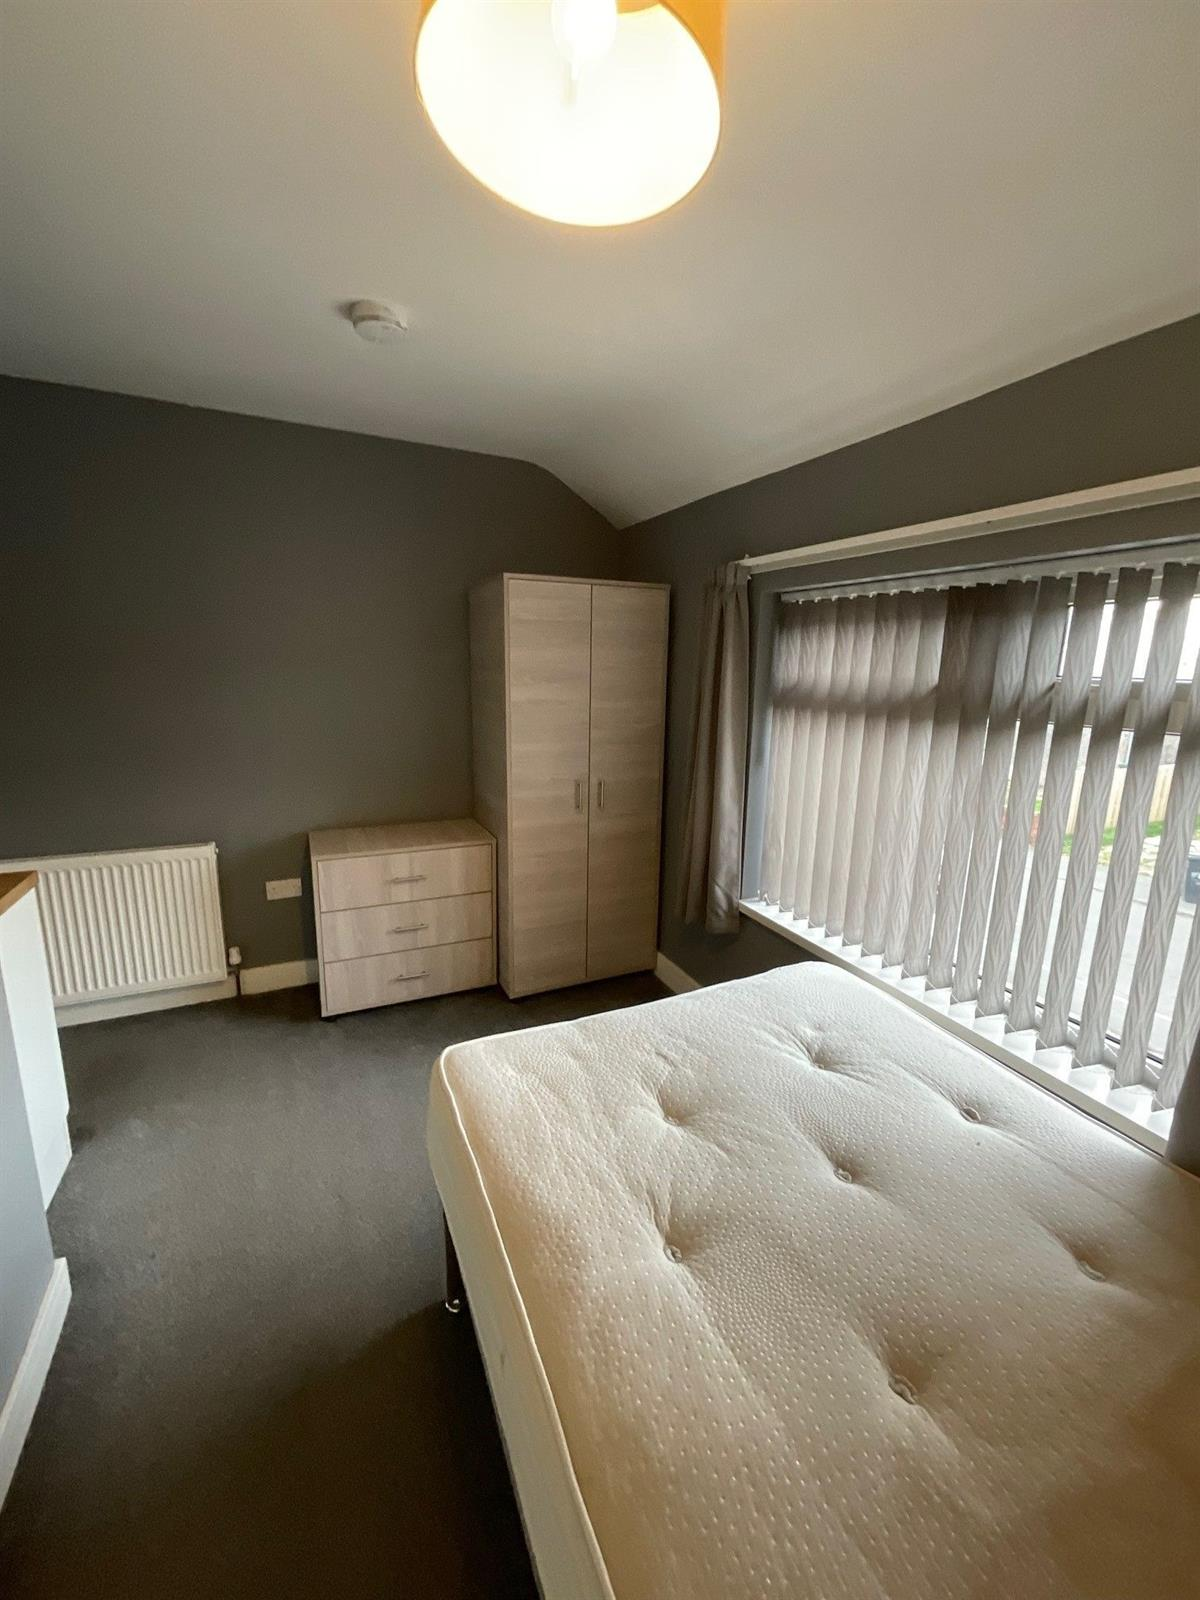 To Let - 1 bedroom Double room, Grangefield Avenue, Room Three, New Rossington, Doncaster - £90 pw